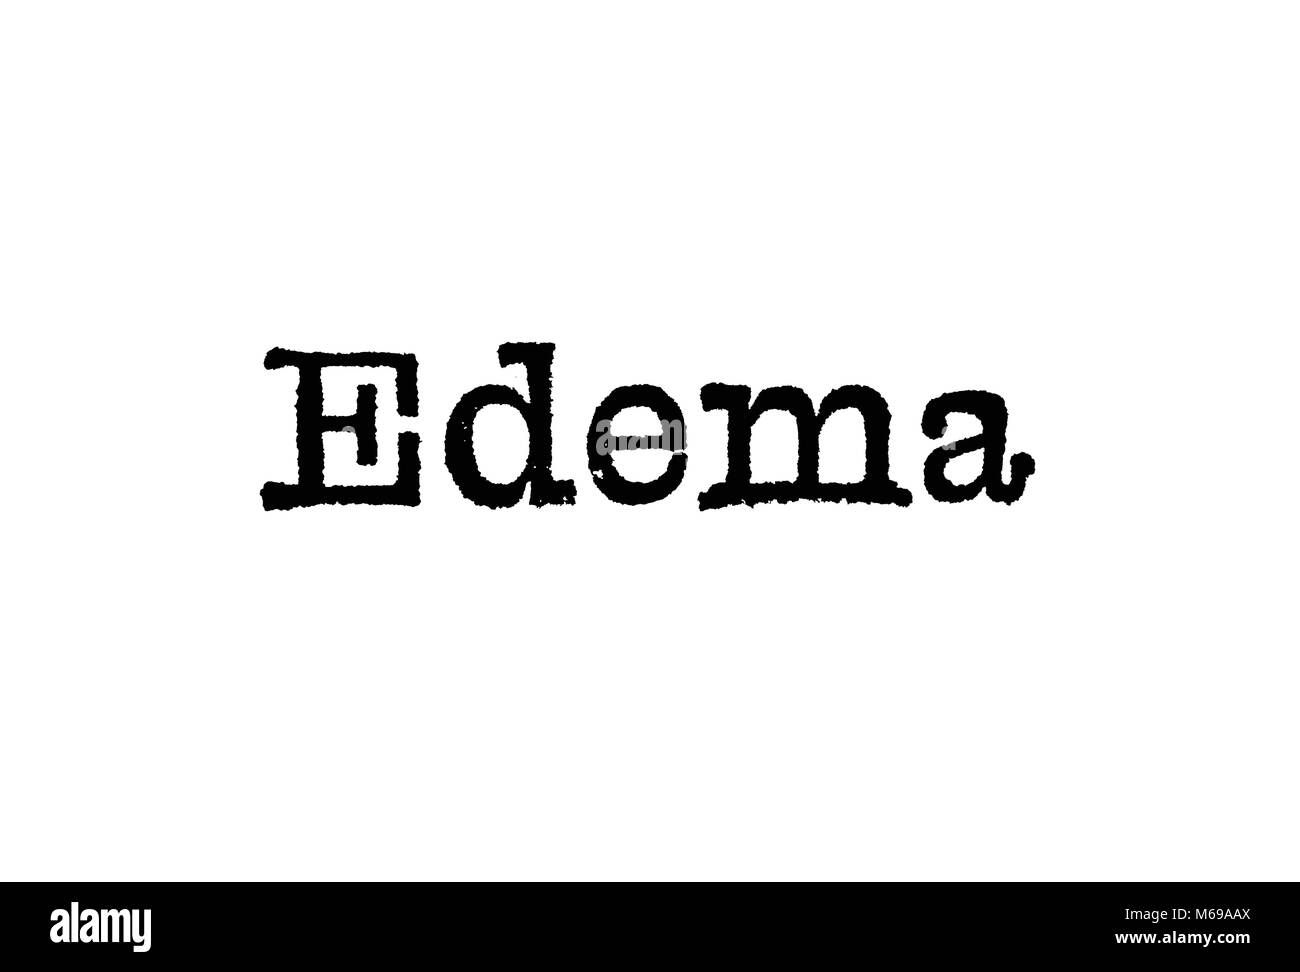 The word Edema from a typewriter on a white background - Stock Image